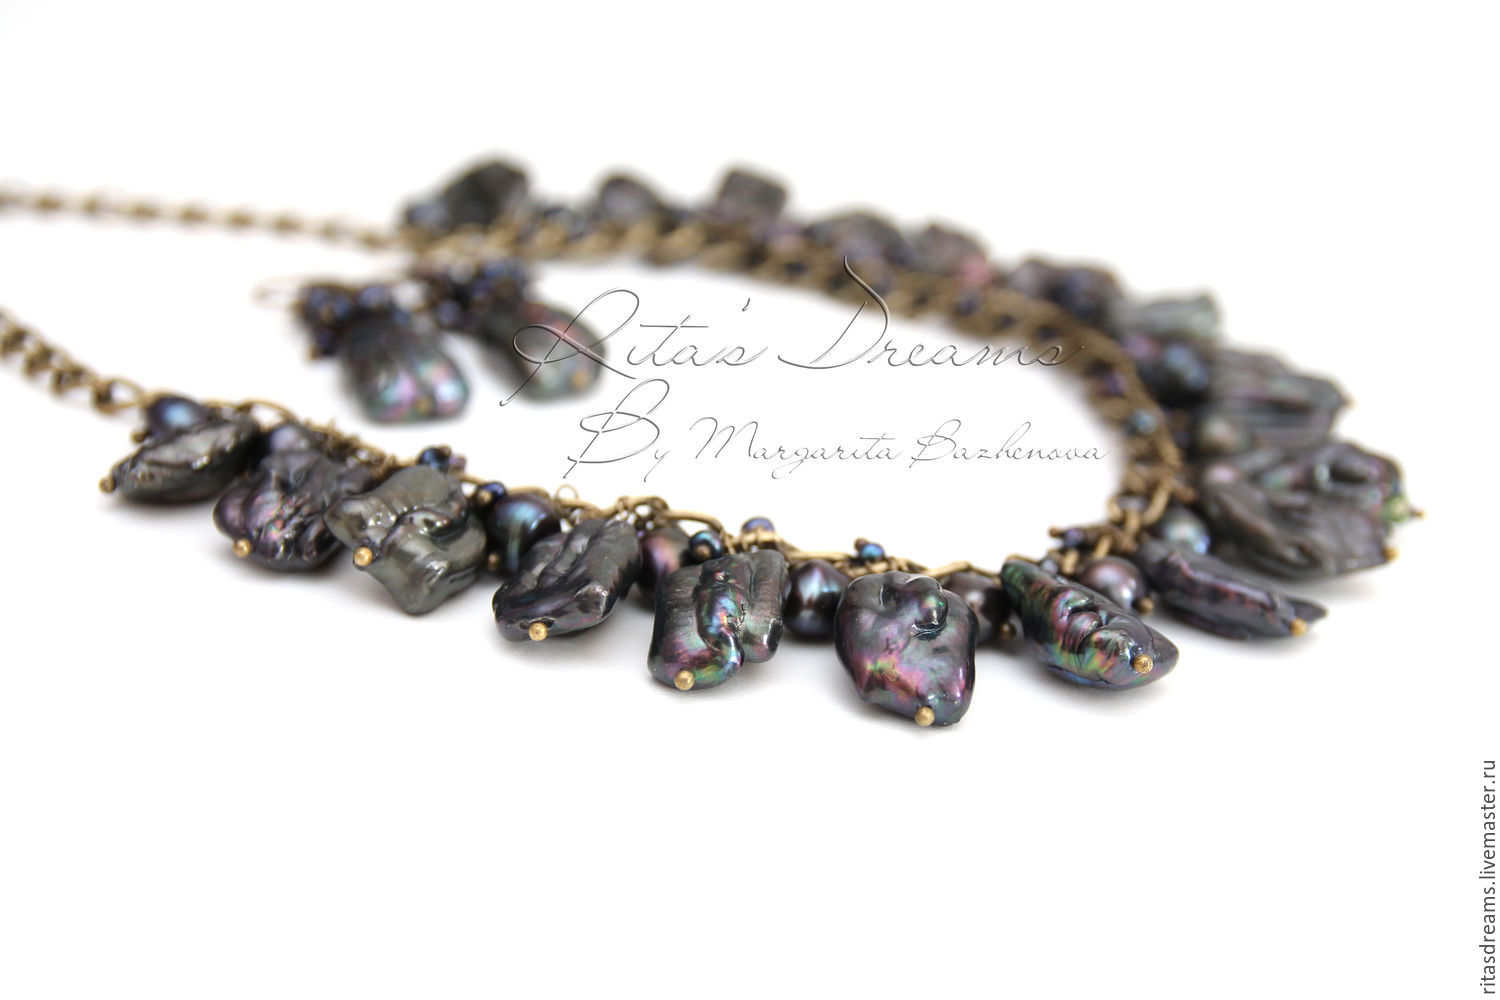 Necklace and earrings of fine pearls of various forms of black color with beautiful pearlescent purple tint.